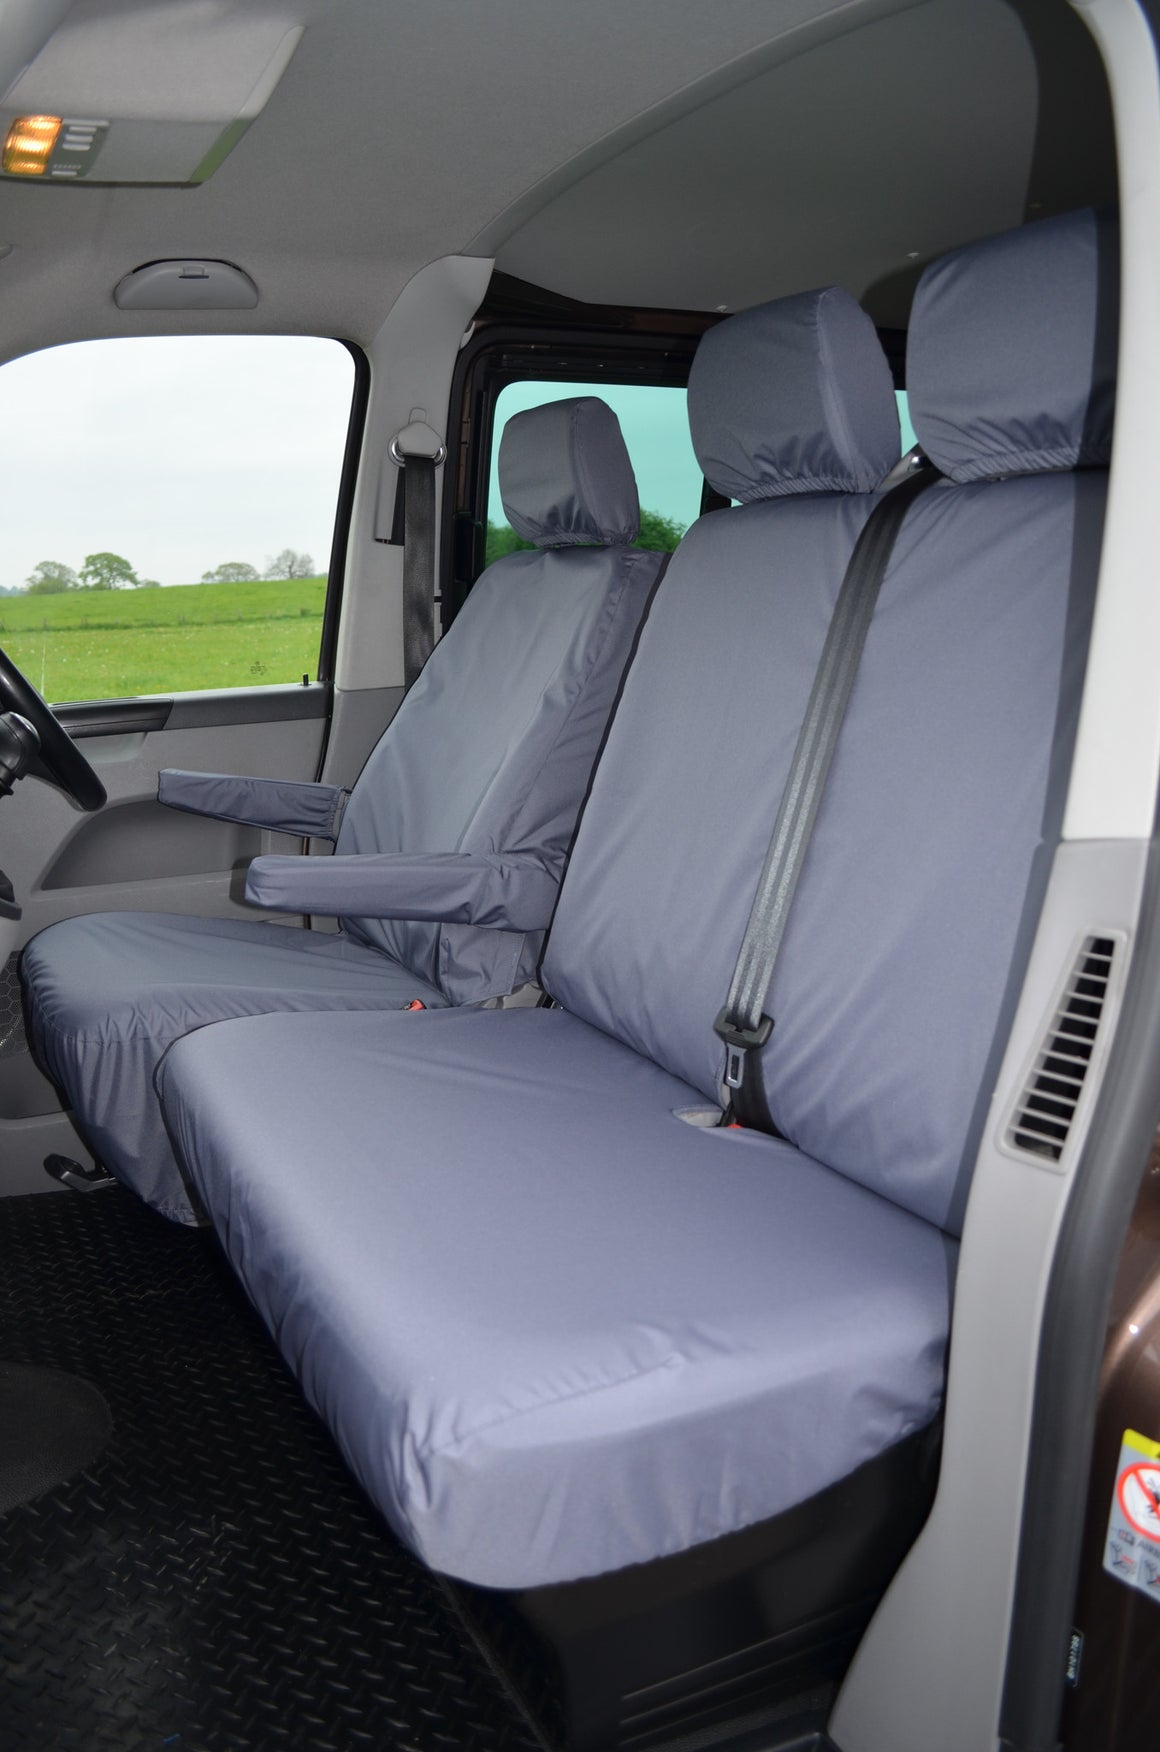 Black Triple Bench Heavy Duty Waterproof Fabric Seat Covers Suitable for Various Mini-Busses and Commercial Vehicles with Wide Bench Seats Easy Fit